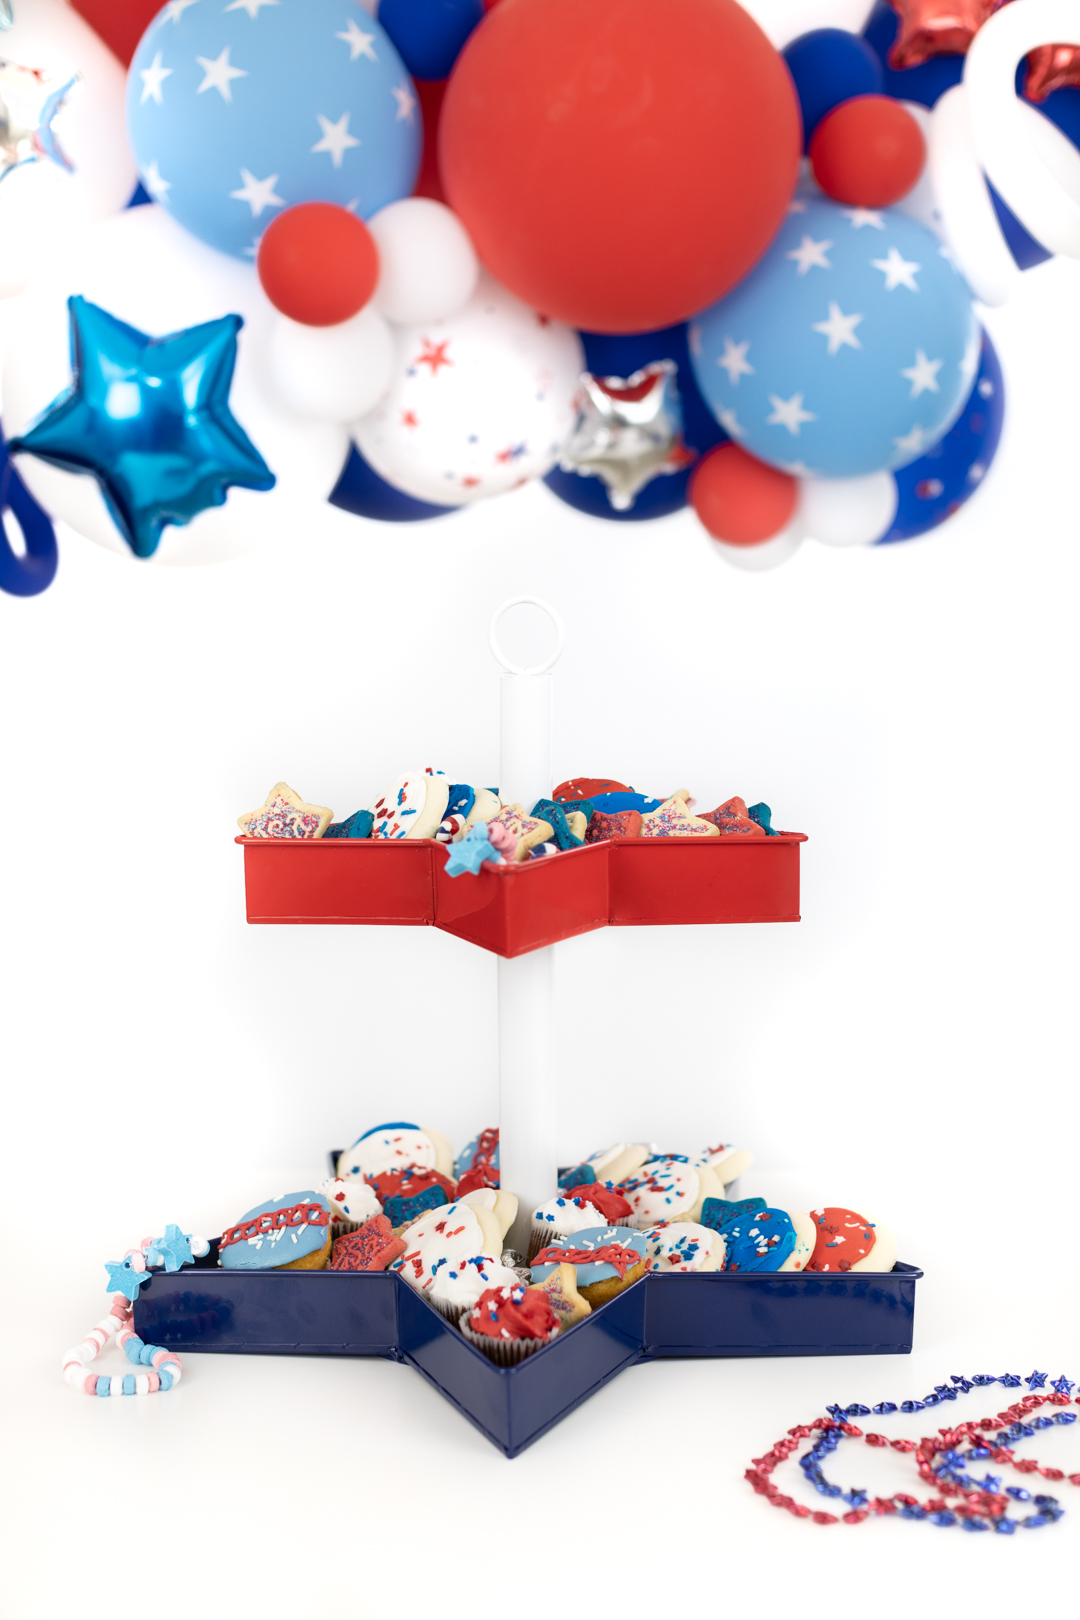 patriotic tiered serving tray filled with sweets